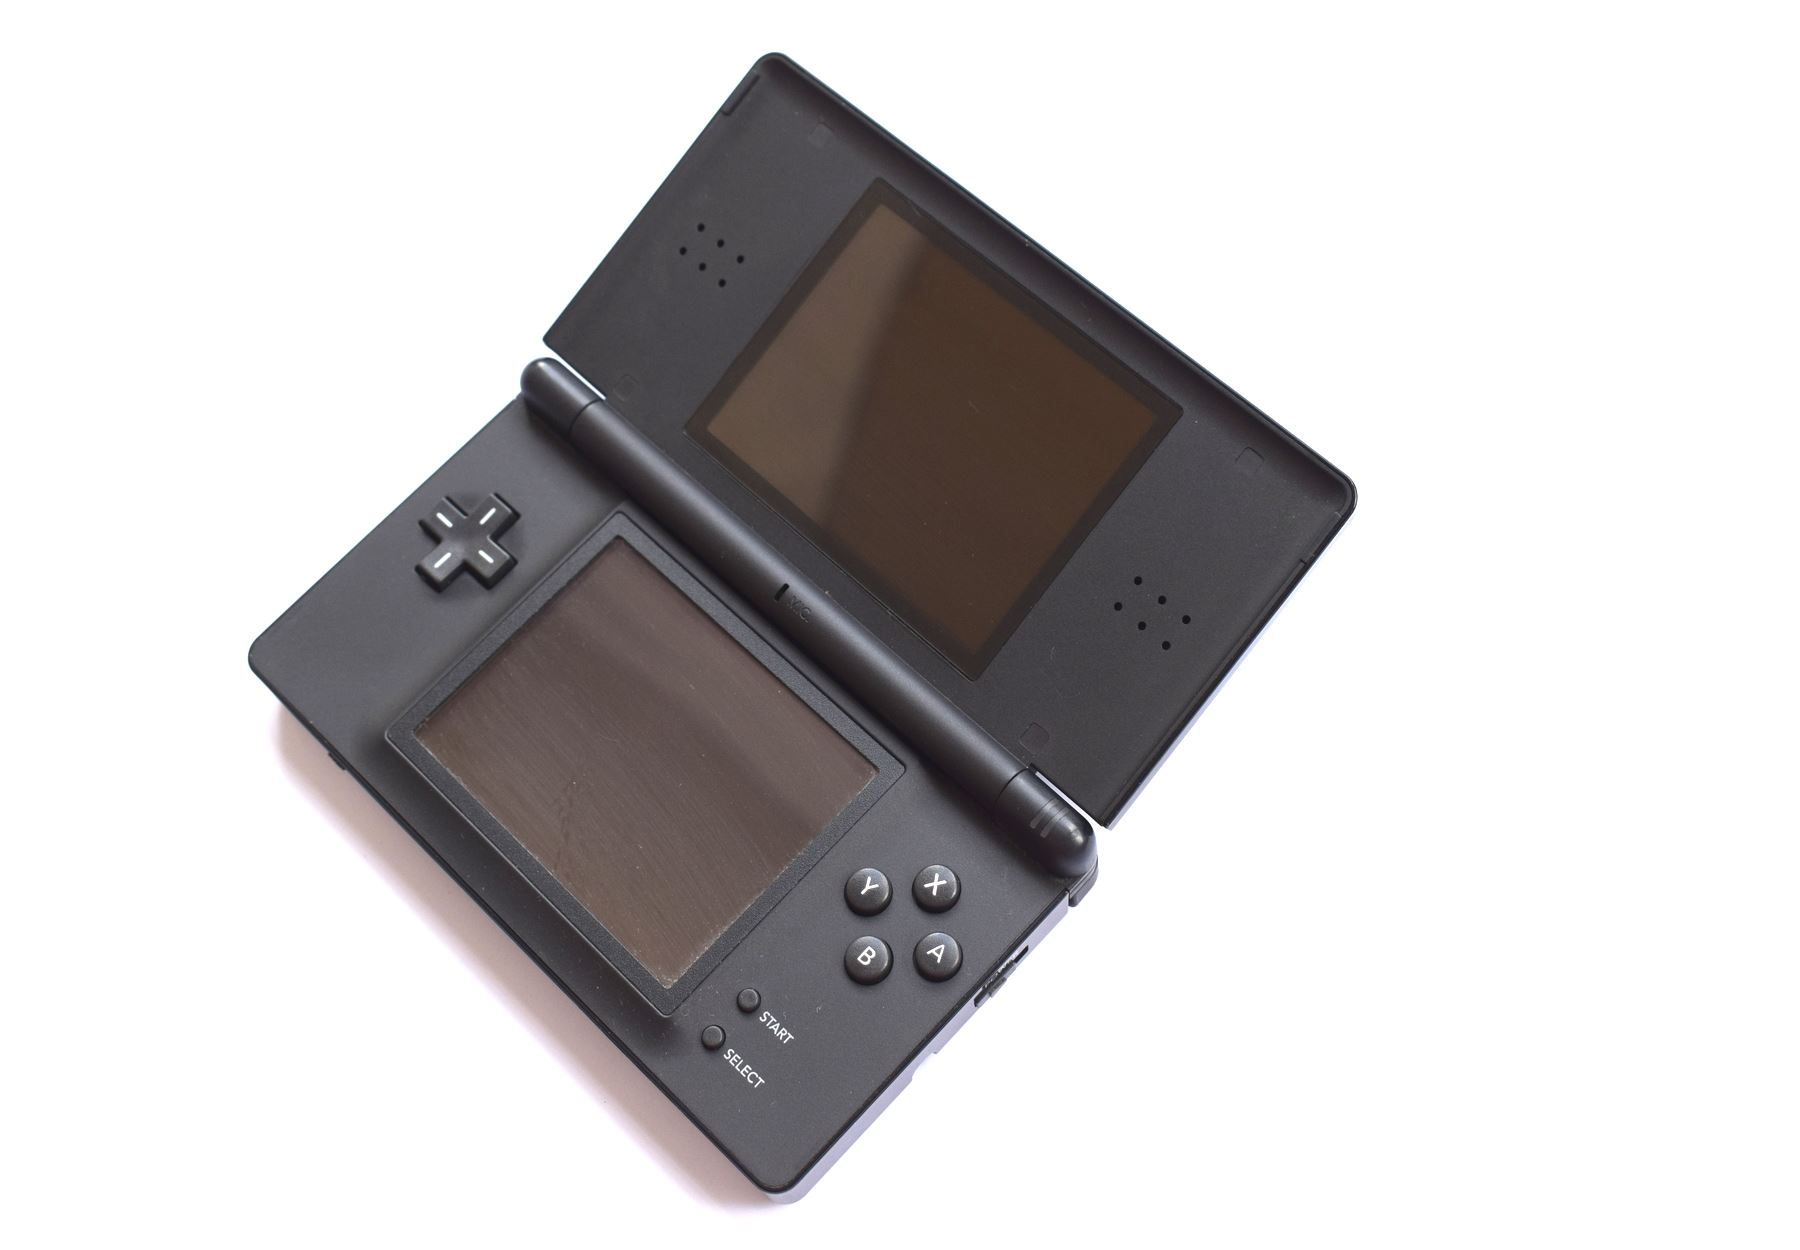 Nintendo-DS-Lite-Console-Handheld-Video-Game-System-NDSL-DS-NDS-DSL-8-Colours thumbnail 3